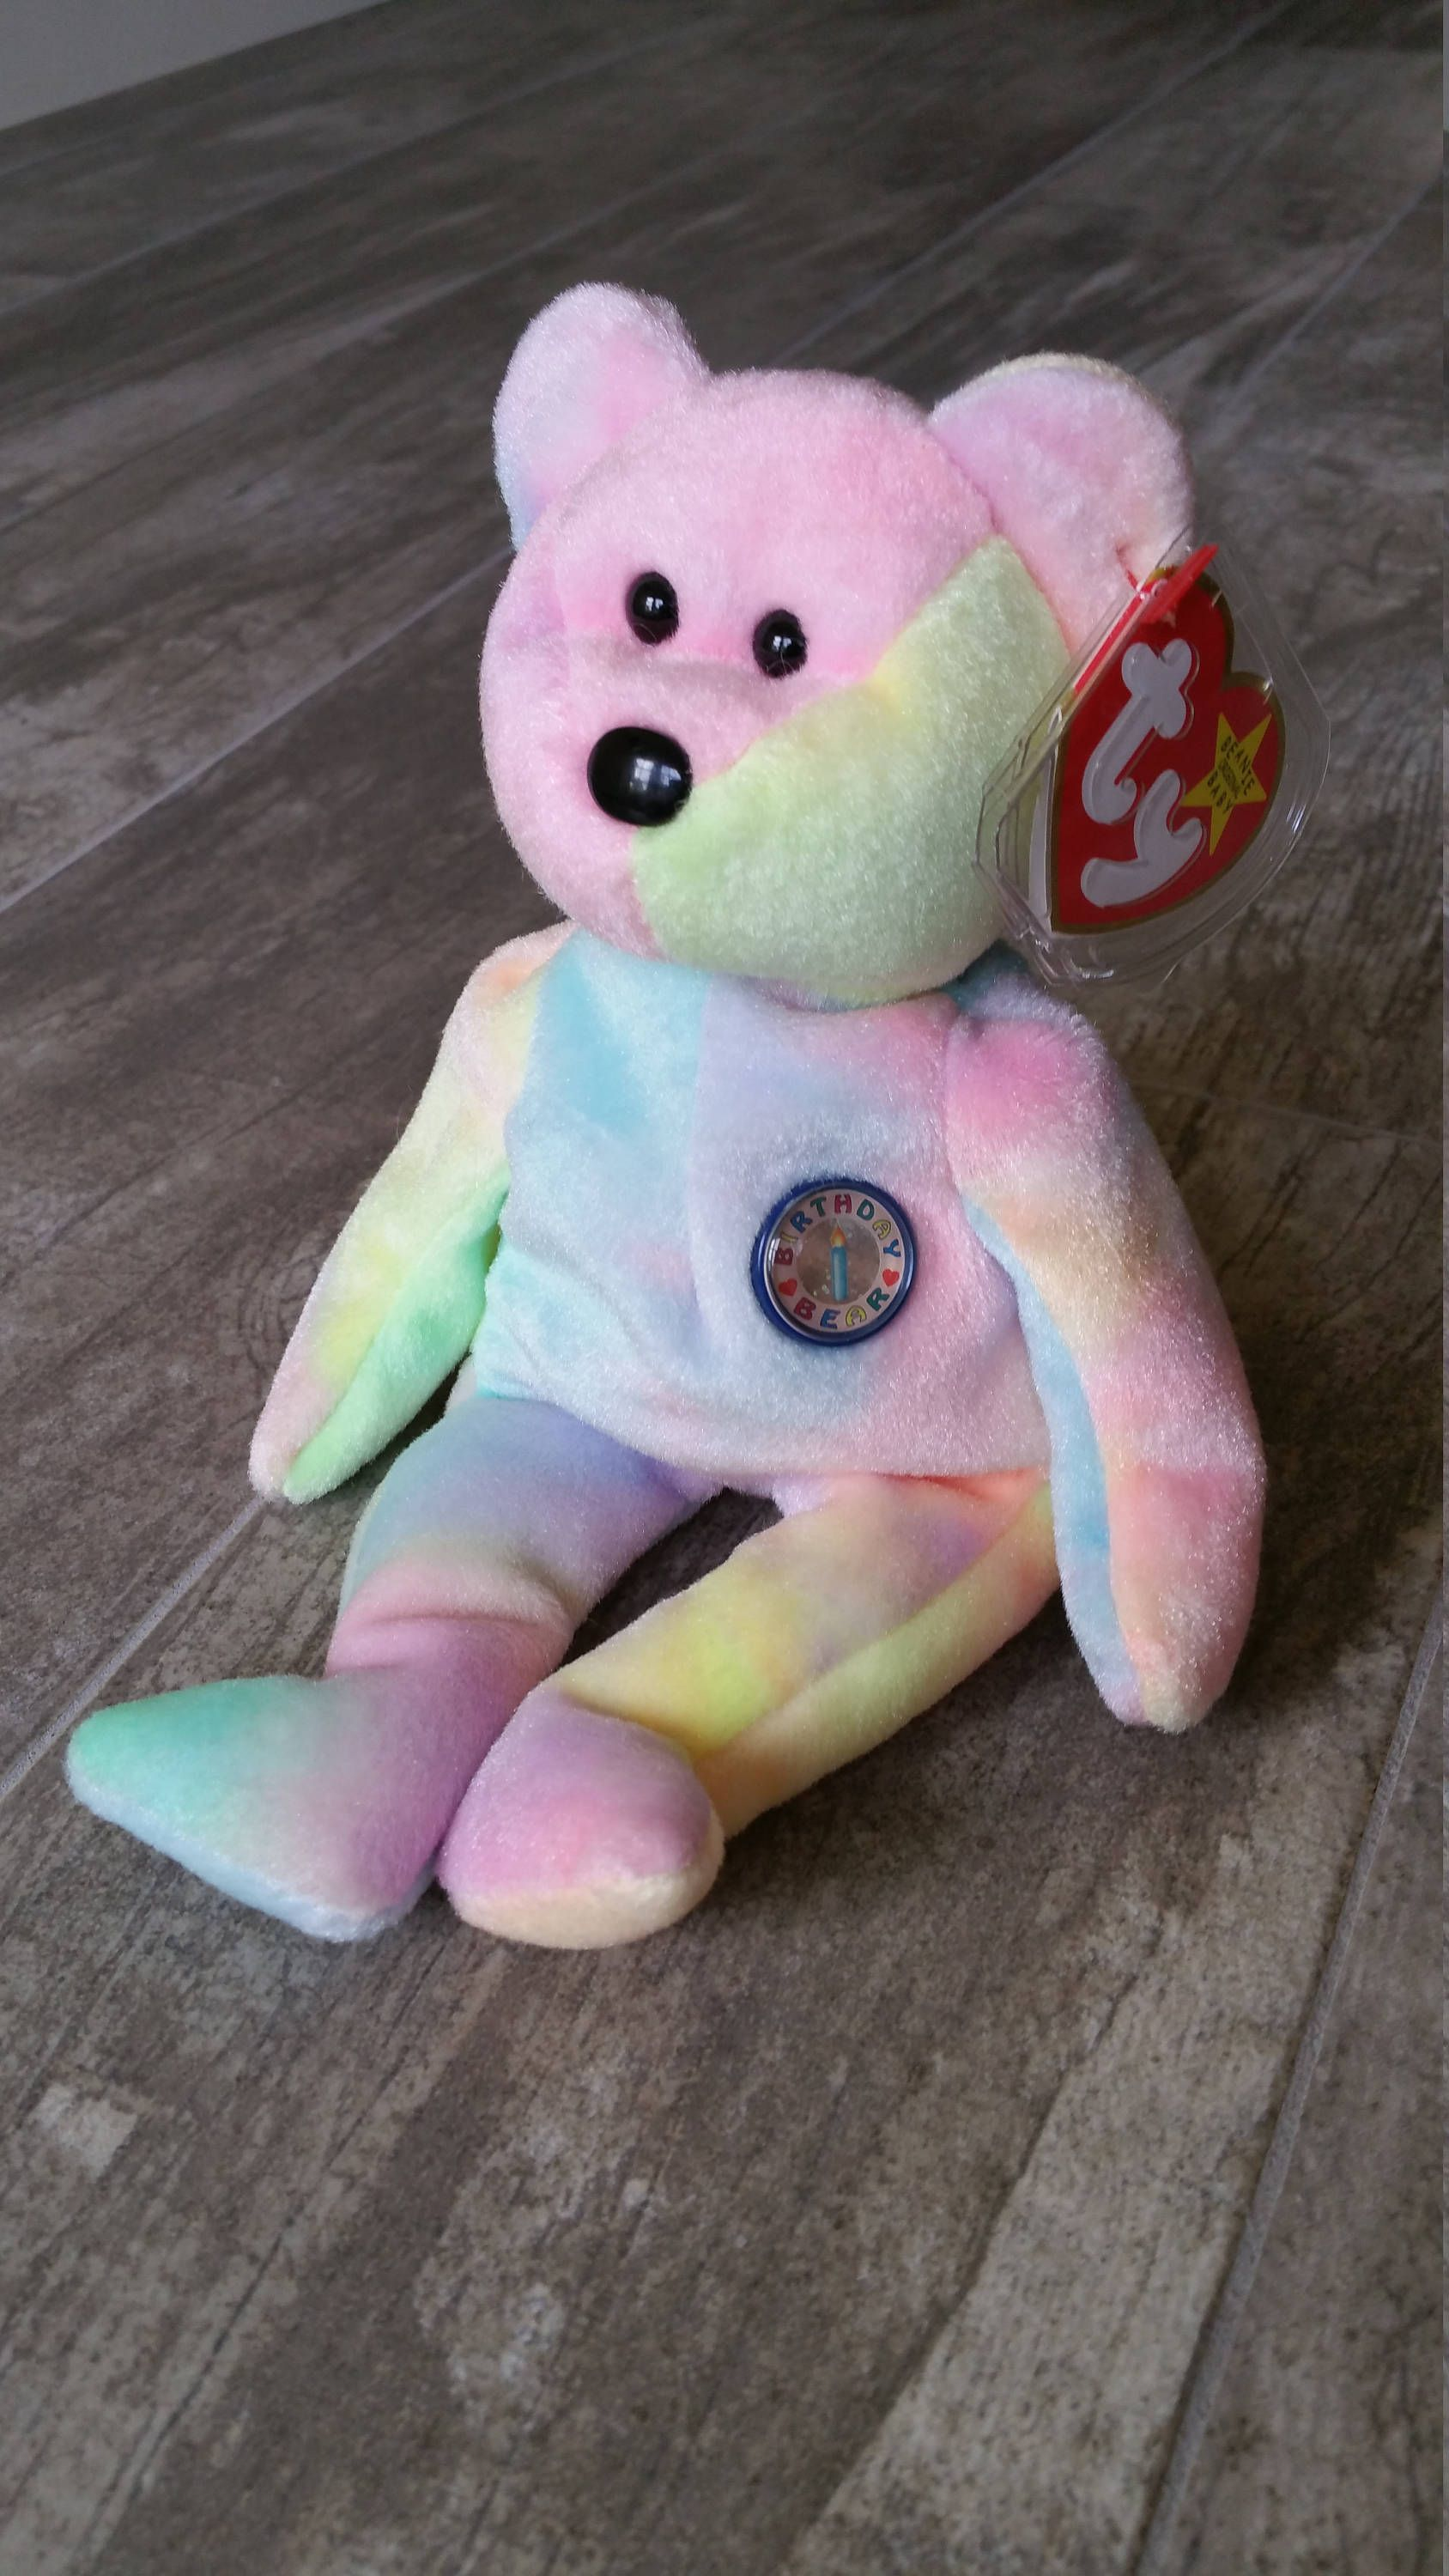 ba25b98fefa TY B B Birthday Bear Tie Dyed Bday Beanie Baby RARE Original Collectible  Easter Decor Nursery Baby Shower Christmas Rainbow Sherbet Toy Gift by ...